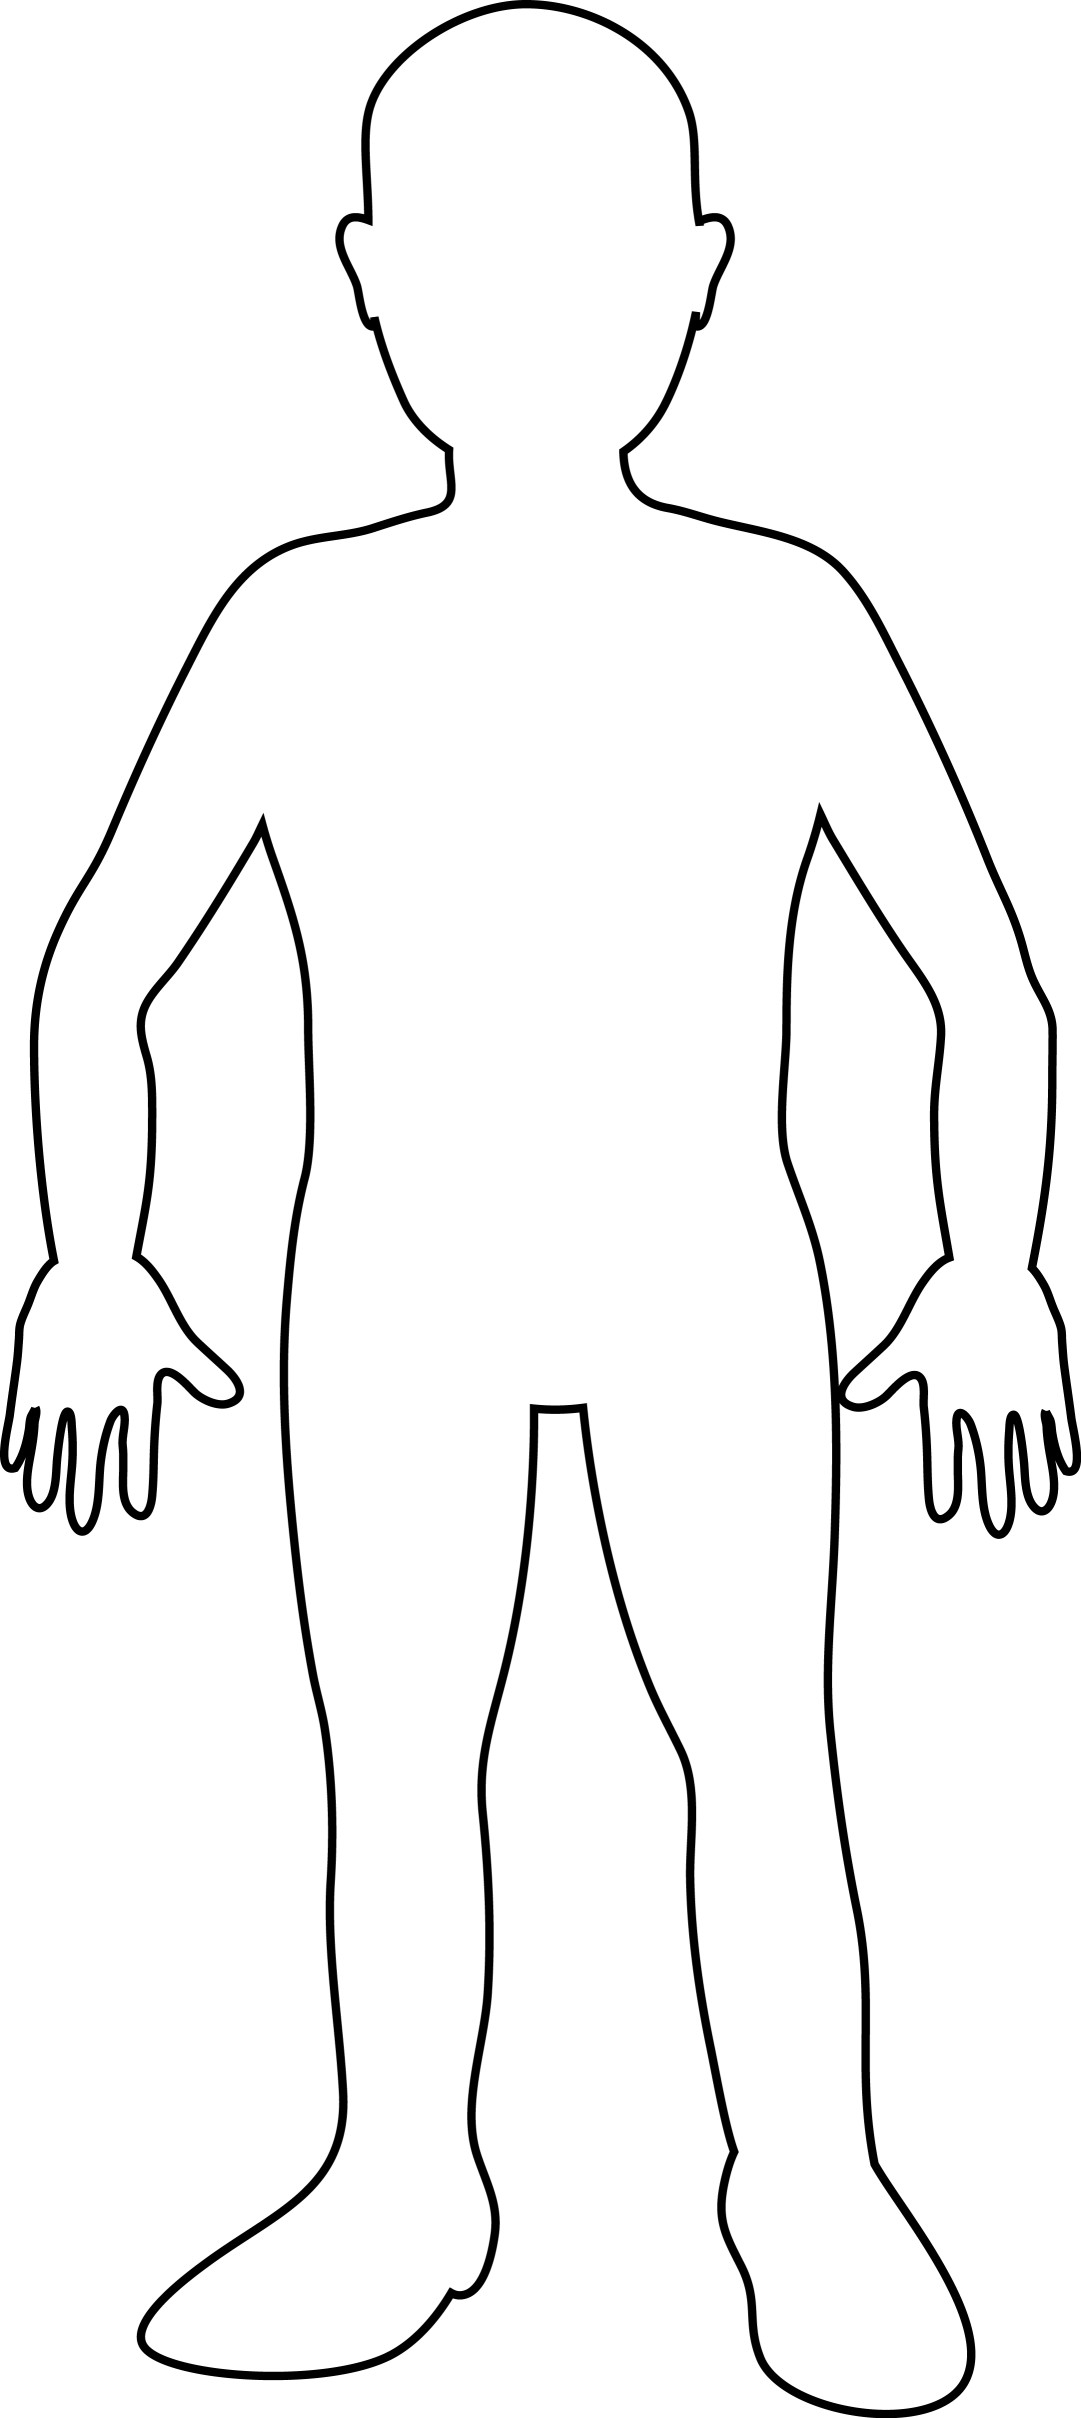 Blank Human Body Clipart - Human Body Clipart